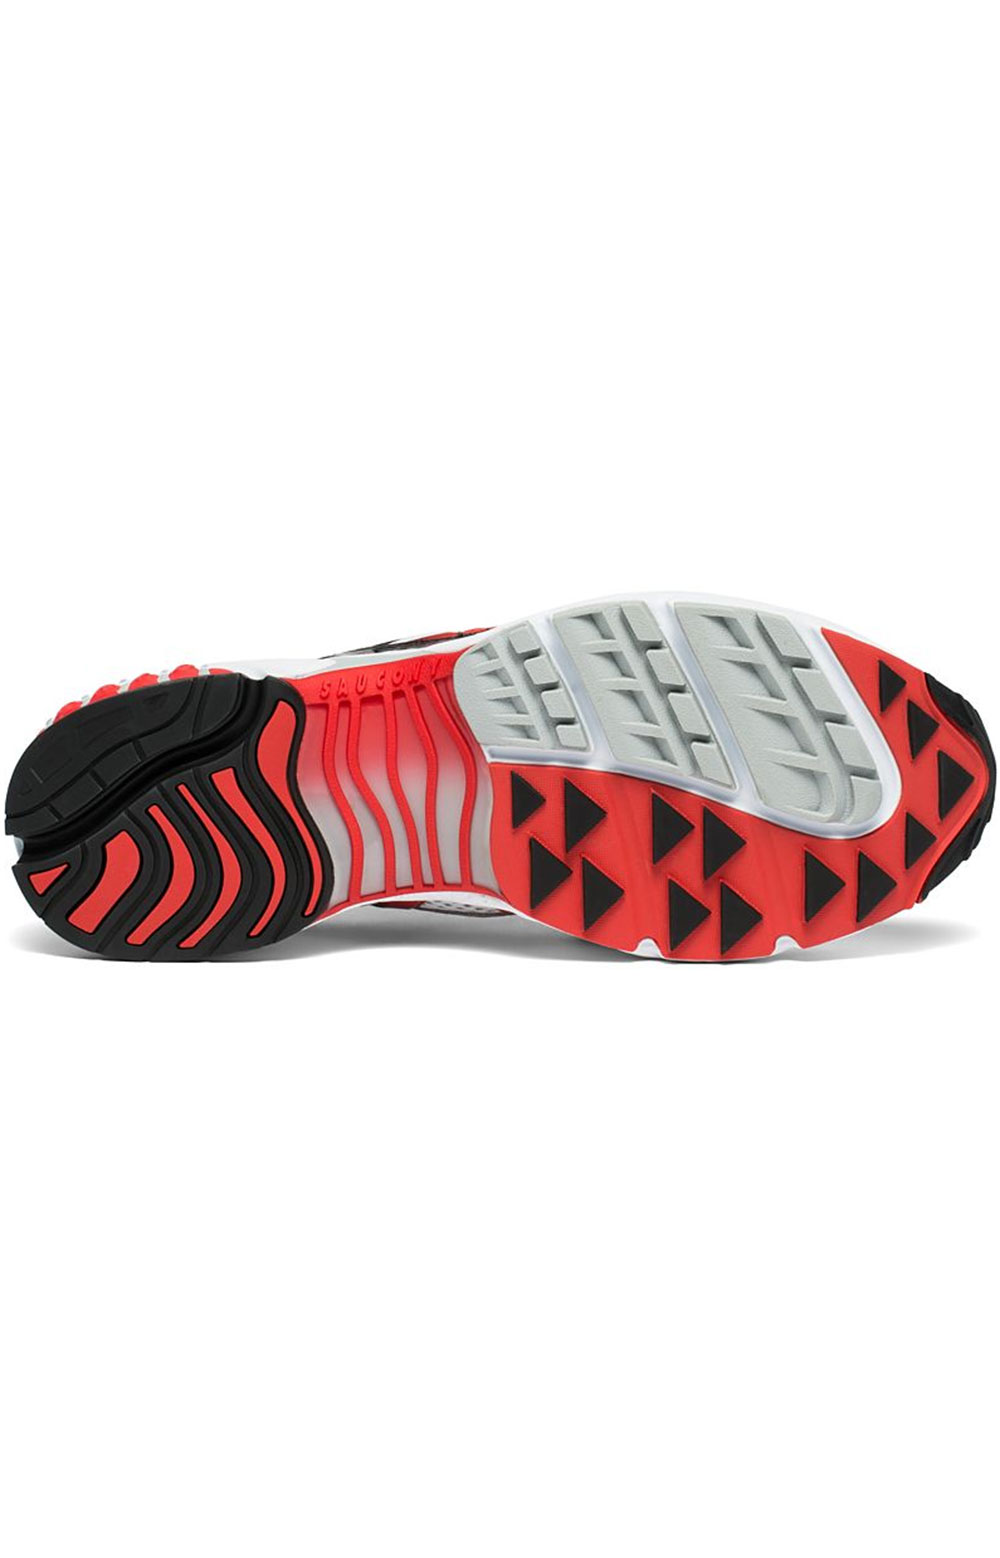 (S70466-2) Grid Web Shoe - White/Grey/Red 5